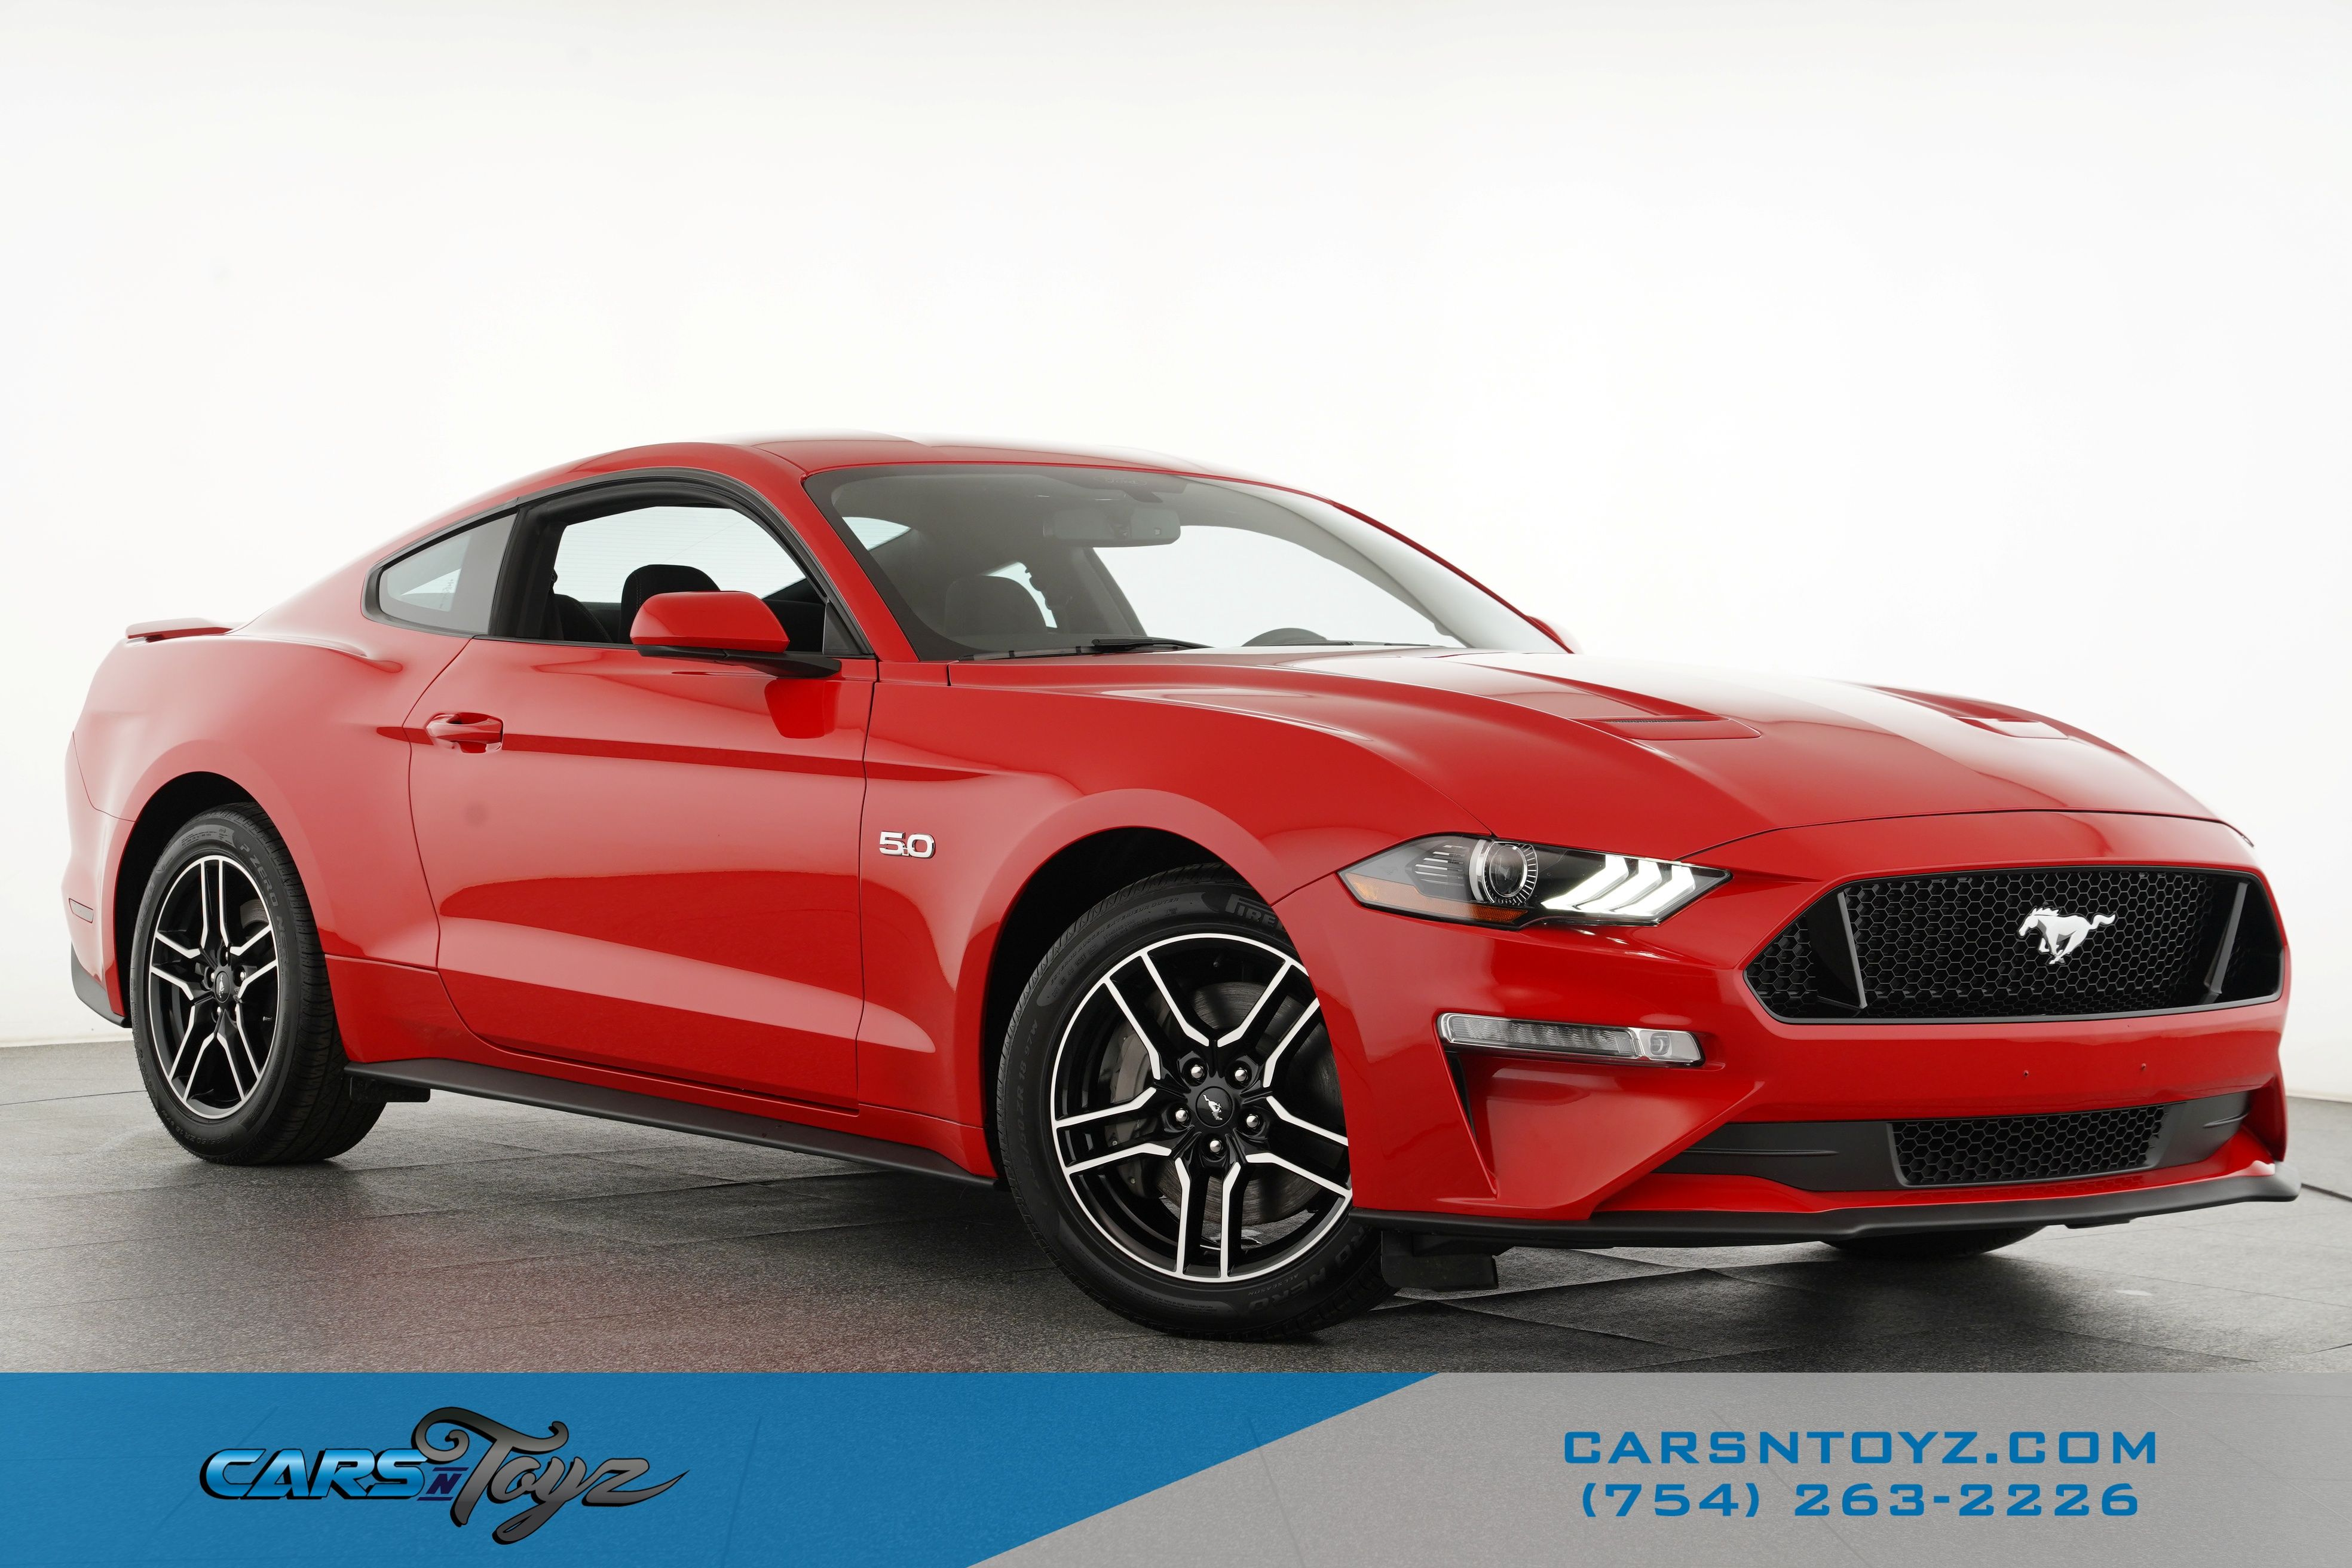 2020 Ford Mustang GT Rear Wheel Drive Coupe